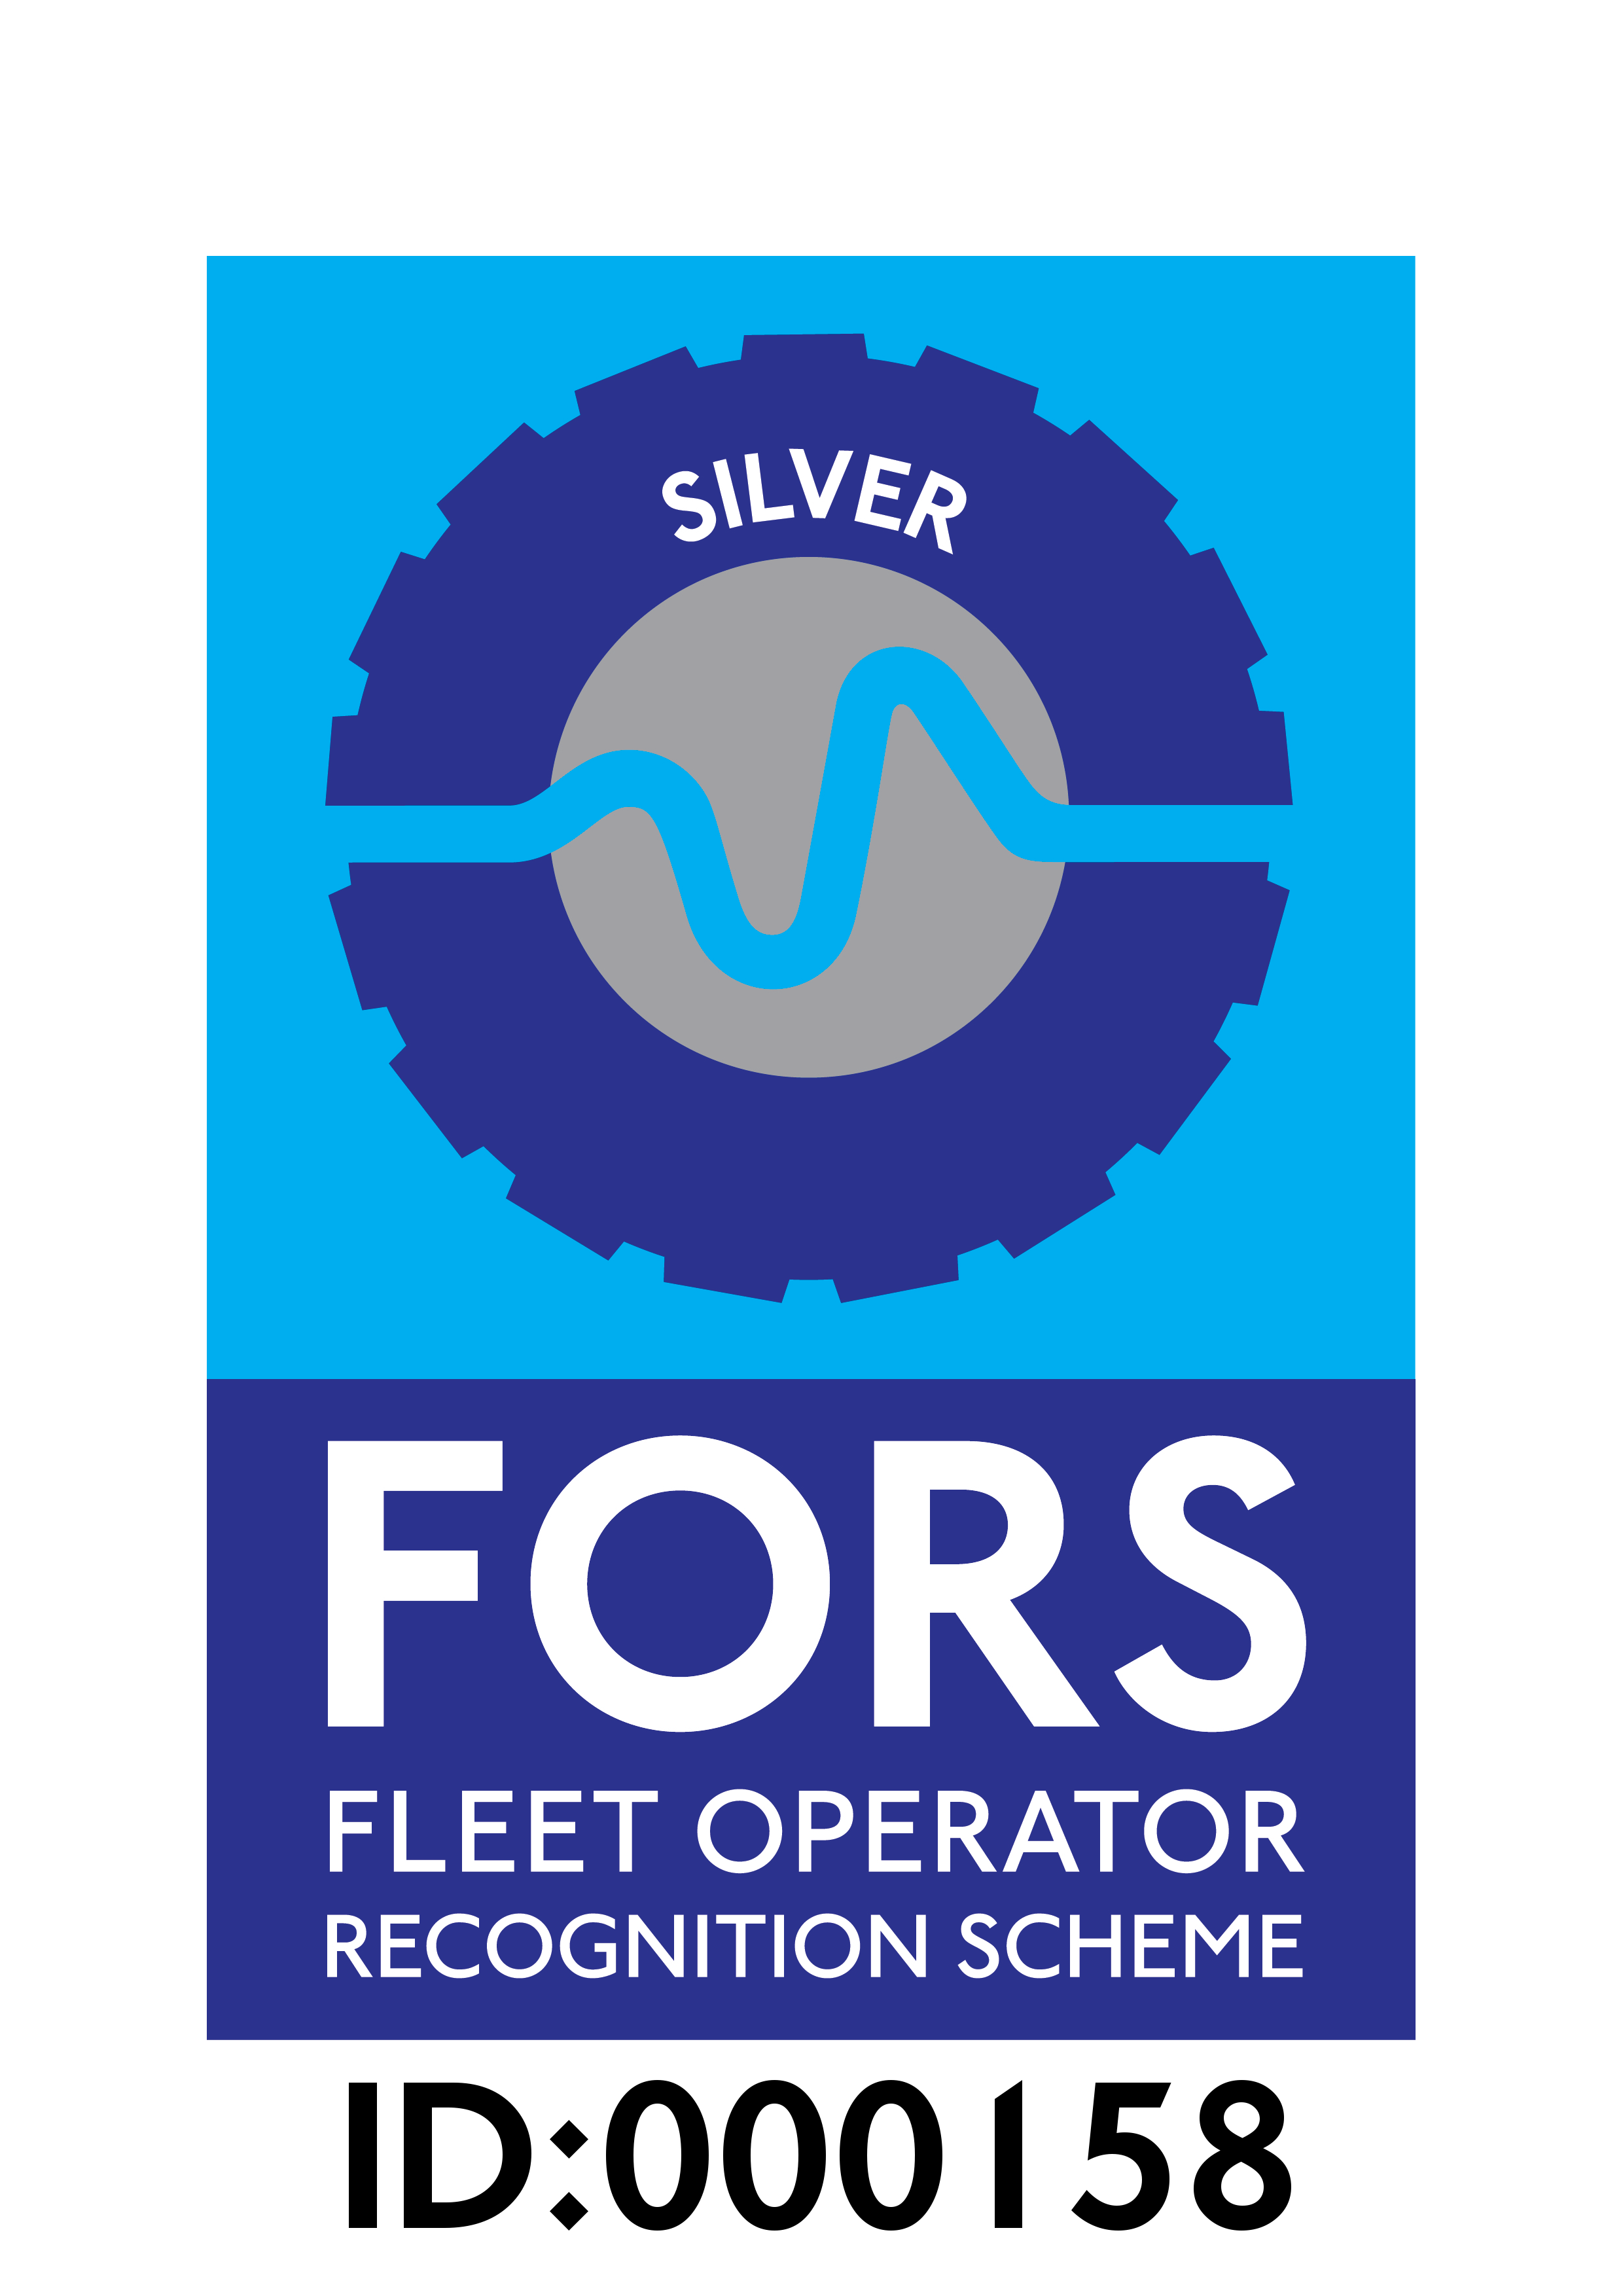 000158 FORS silver logo